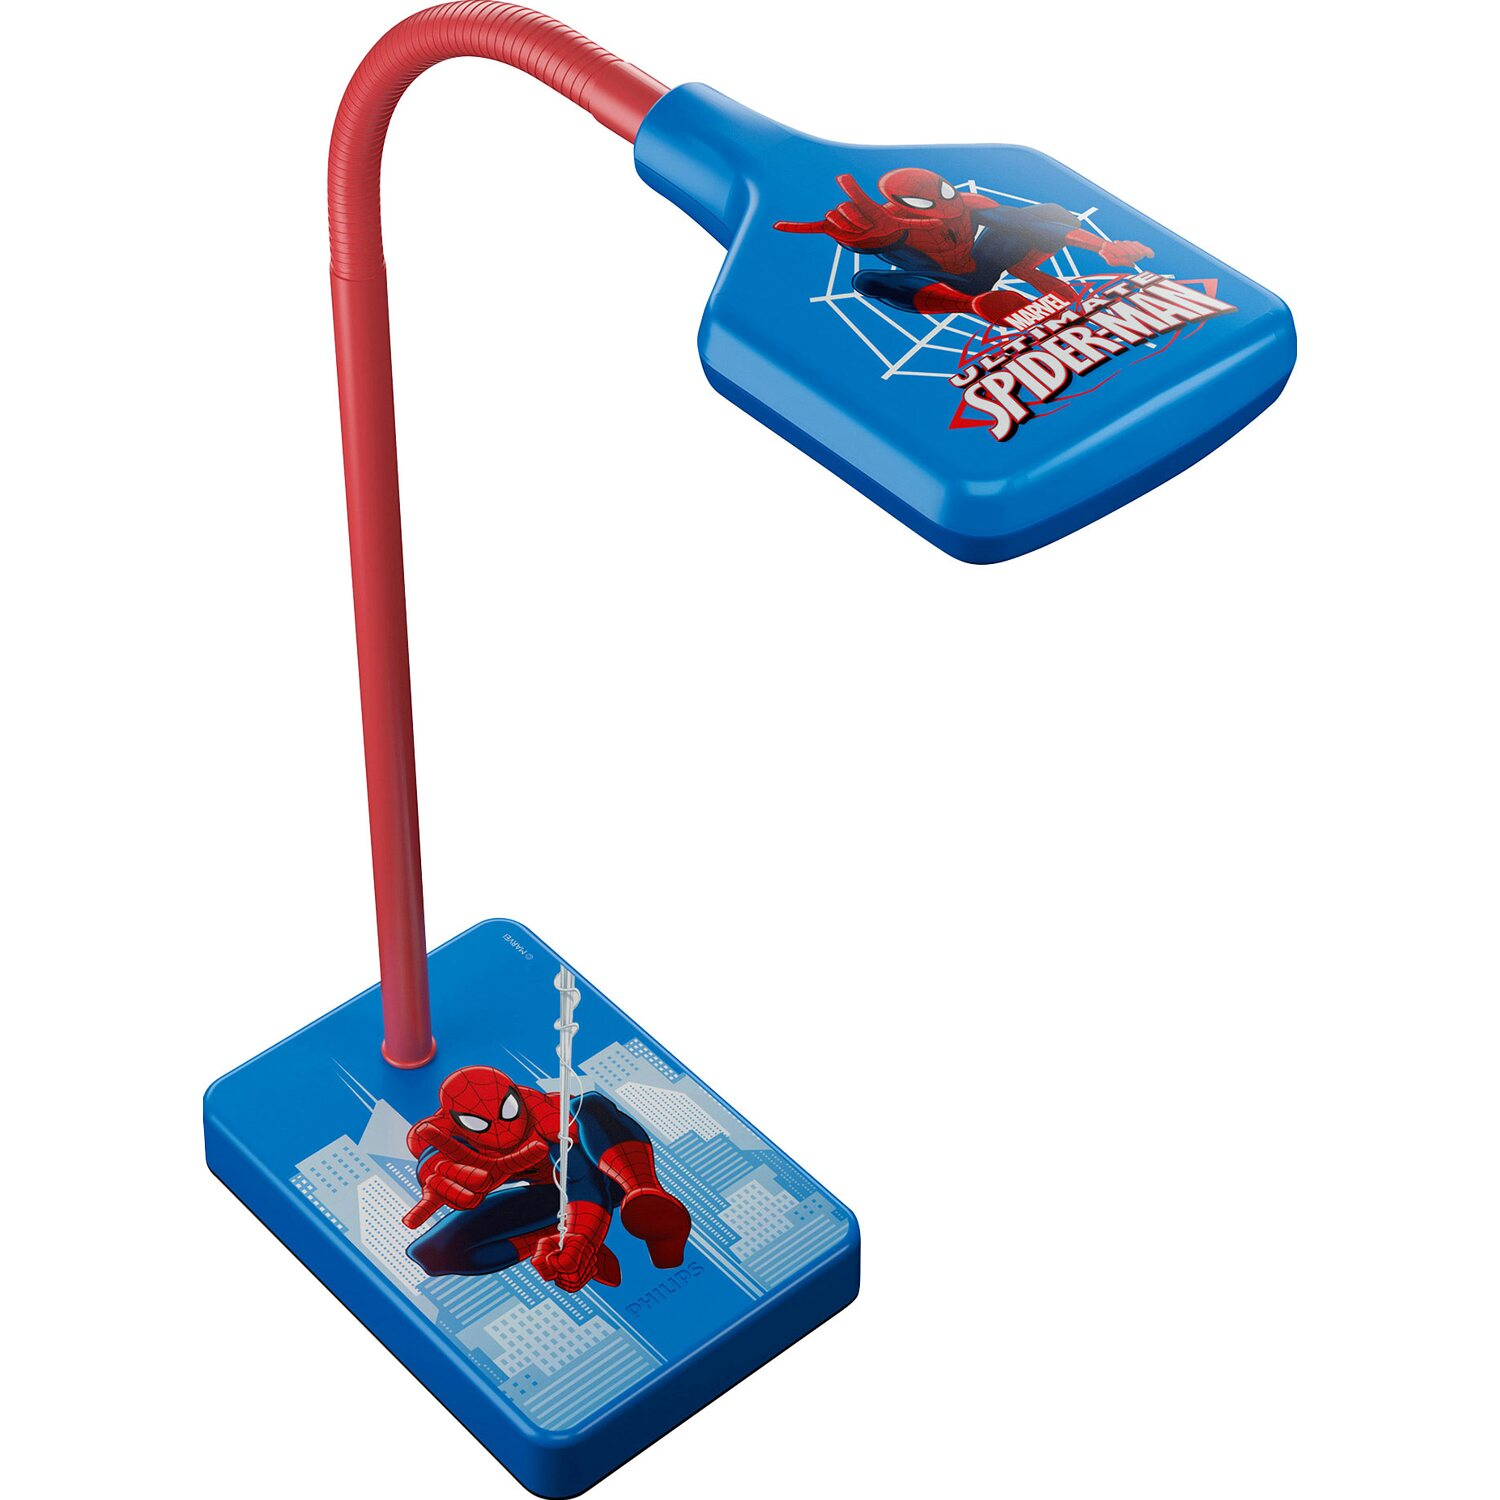 philips led tisch kinderleuchte disney eek a a spiderman kaufen bei obi. Black Bedroom Furniture Sets. Home Design Ideas